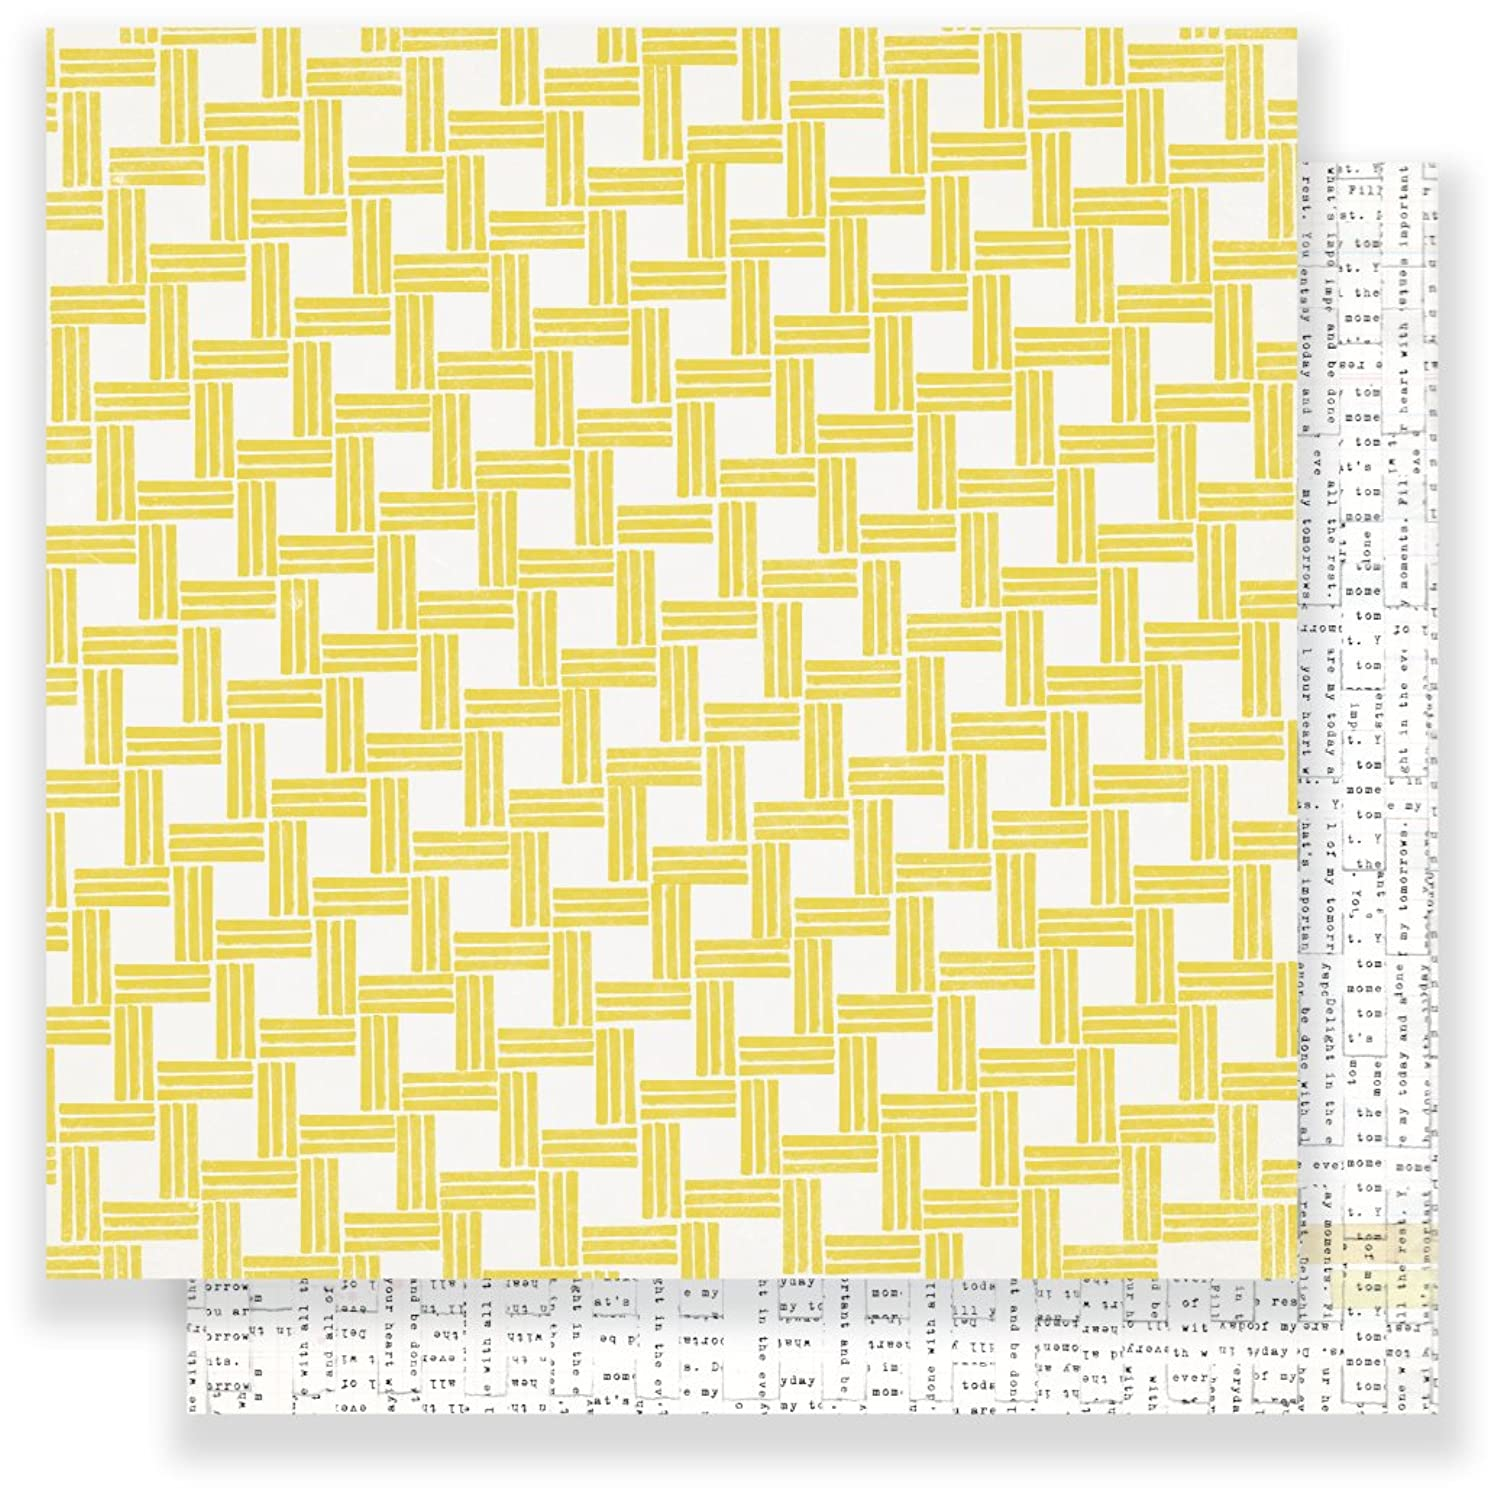 American Crafts Maggie Holmes Chasing Dreams Stay True 25 Pack of 12 x 12 Inch Patterned Paper, Piece